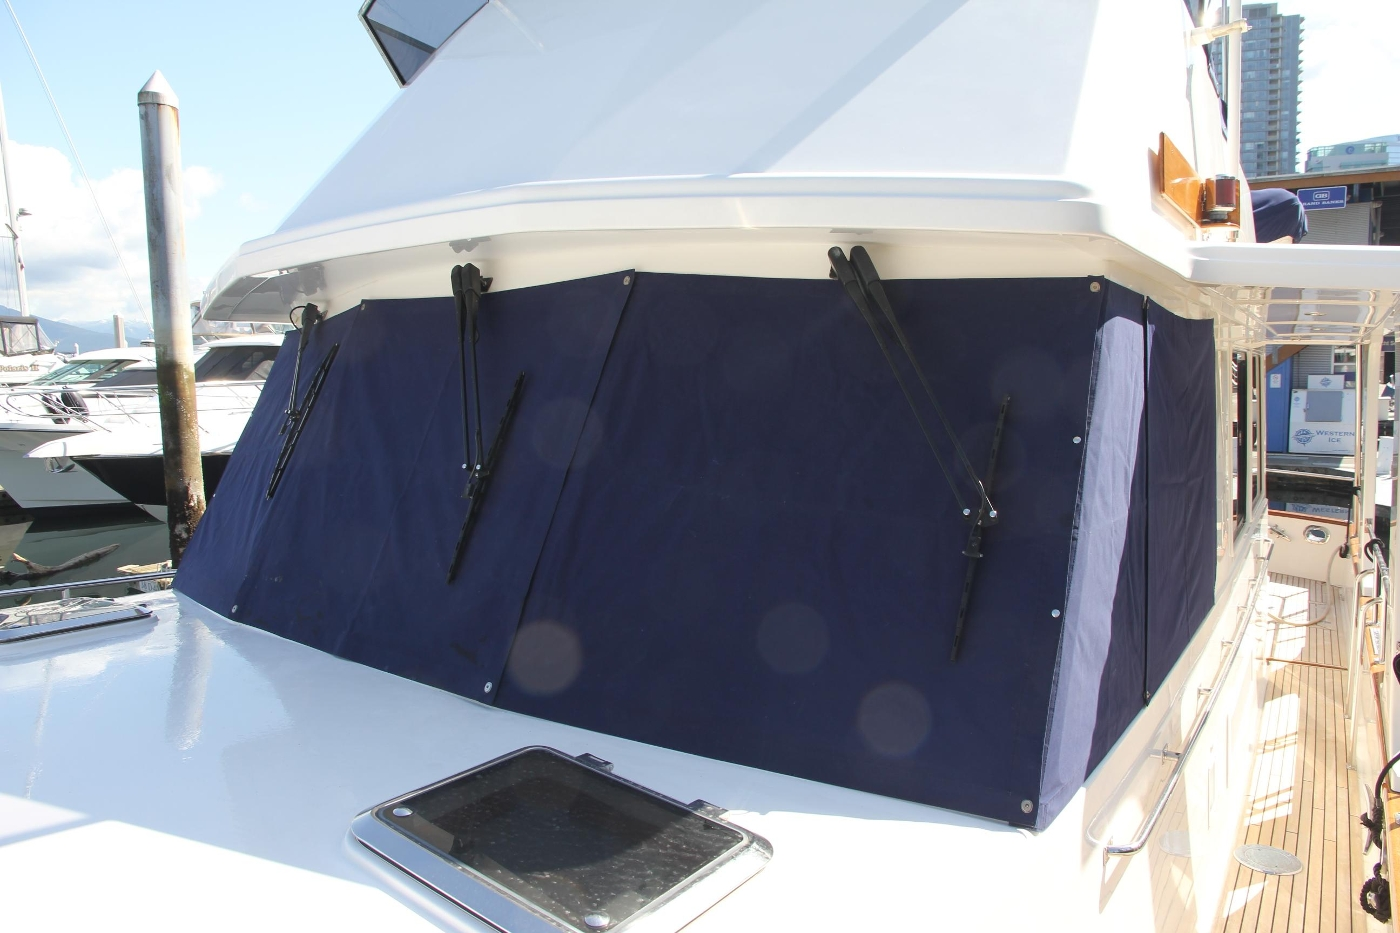 2009 Grand Banks 47 Europa, Windshield Covers